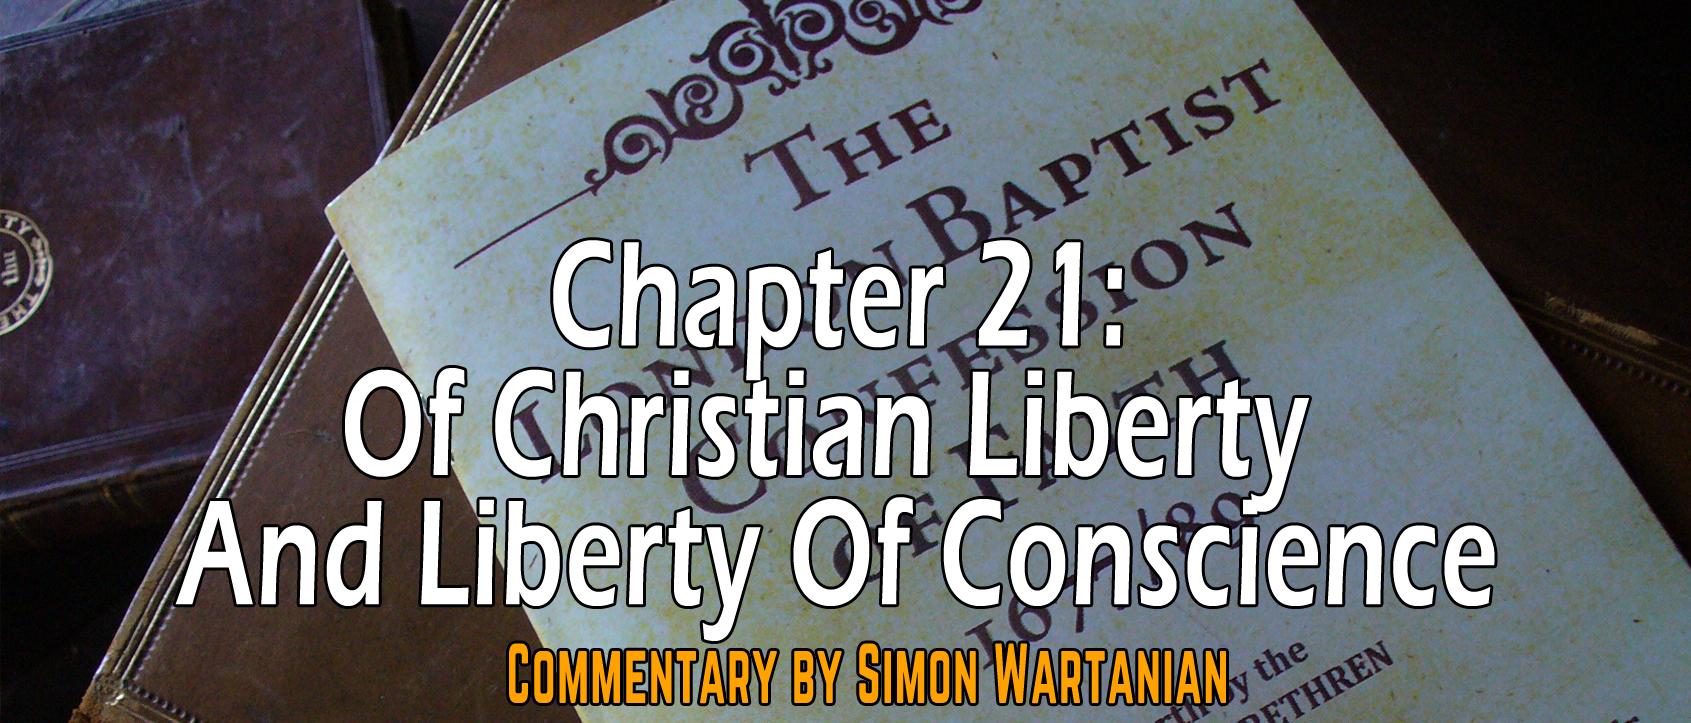 1689 Baptist Confession Chapter 21: Of Christian Liberty and Liberty of Conscience - Commentary